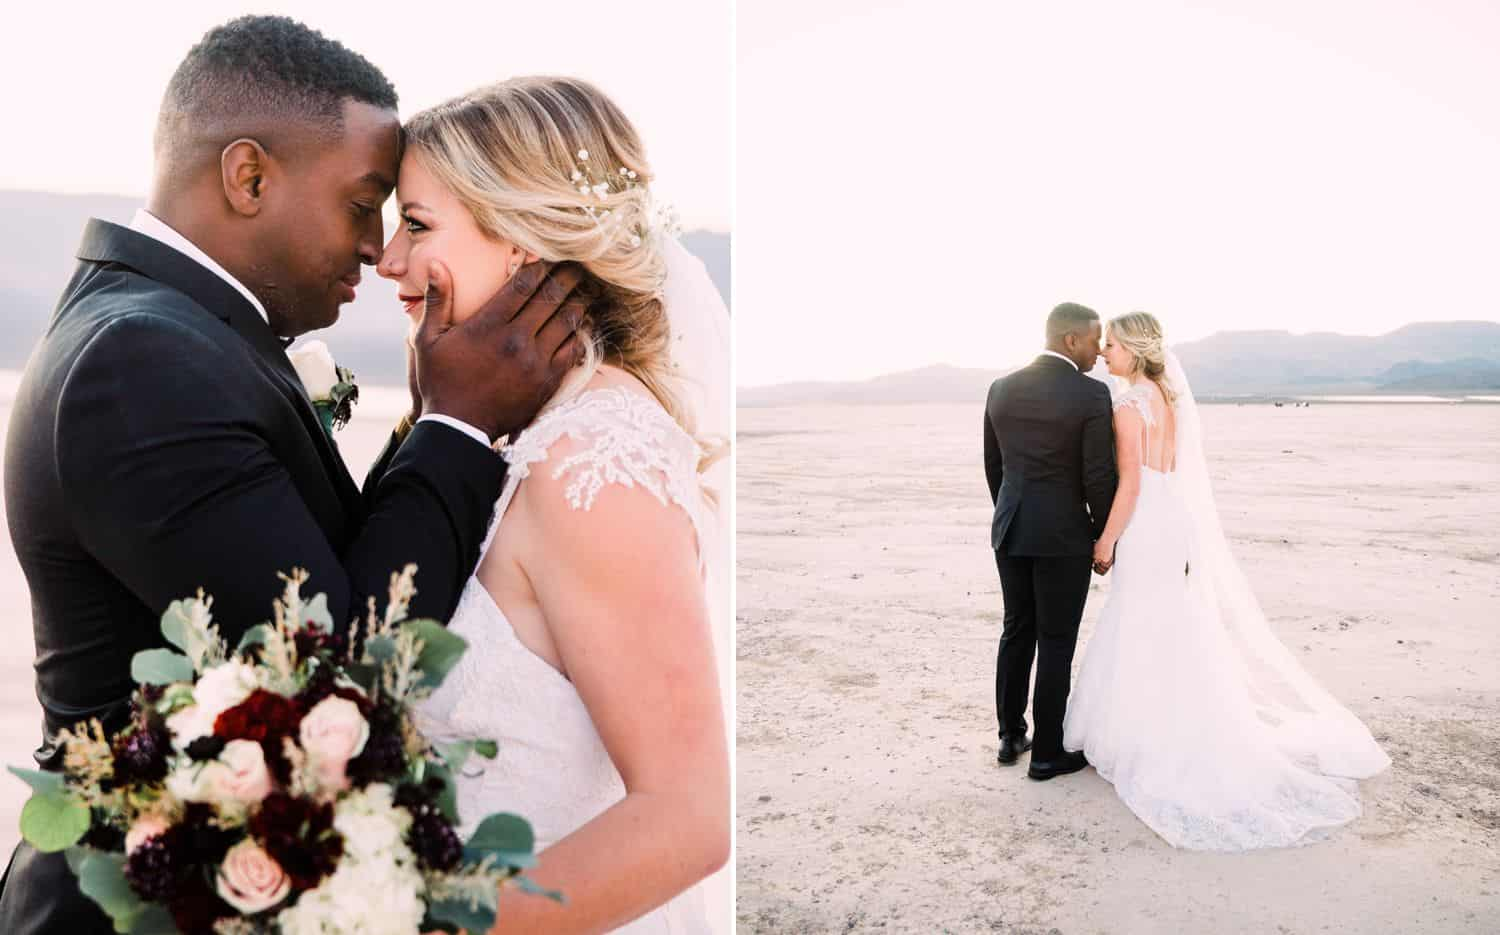 A bride and groom pose nose-to-nose during their desert elopement